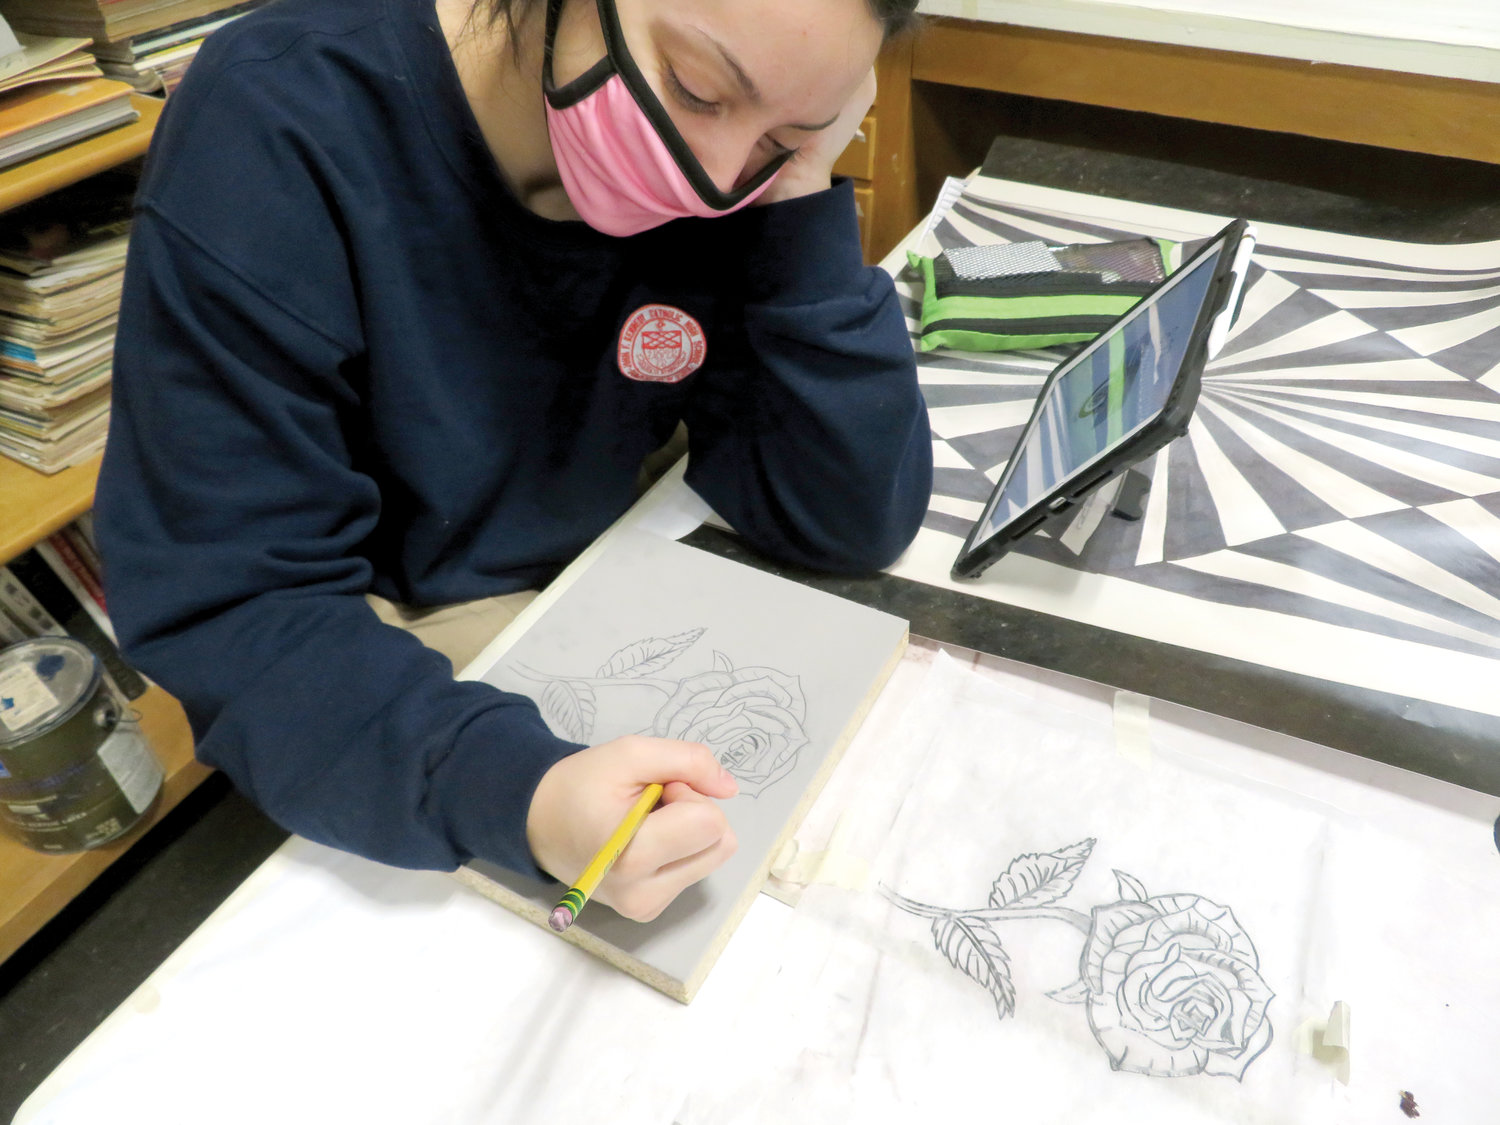 Students at John F. Kennedy Catholic Preparatory School in Somers are divided into two cohort groups that alternate weeks of in-person study with virtual instruction at home. Junior Valeria Acierno works on a drawing in studio art.